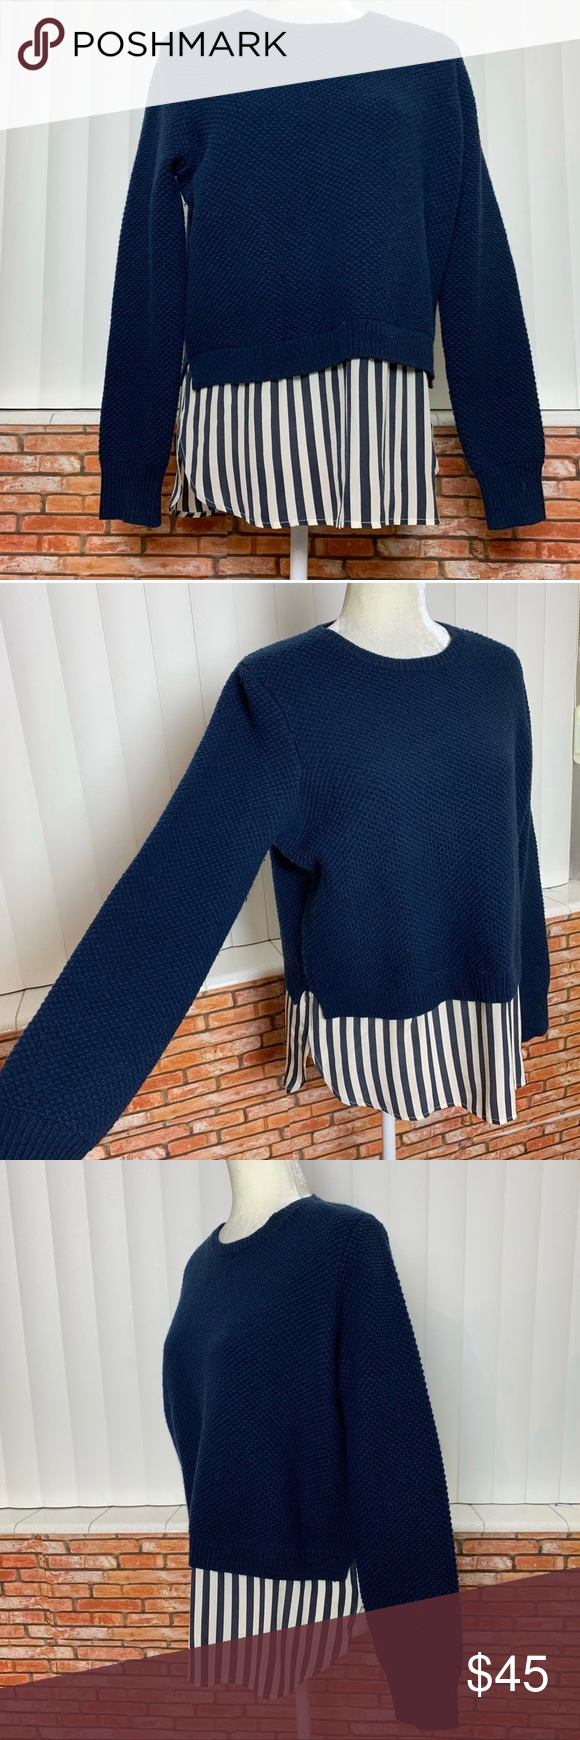 "j. crew sweater Beautiful blue sweater with striped shirt tail attached. Crew neck. Zippered back. Great shape.  Pit to Pit: 21"" Shoulder to Hem: 16"" Pit cuff: 19""  Non smoking, no pet home. J. Crew Sweaters Crew & Scoop Necks"